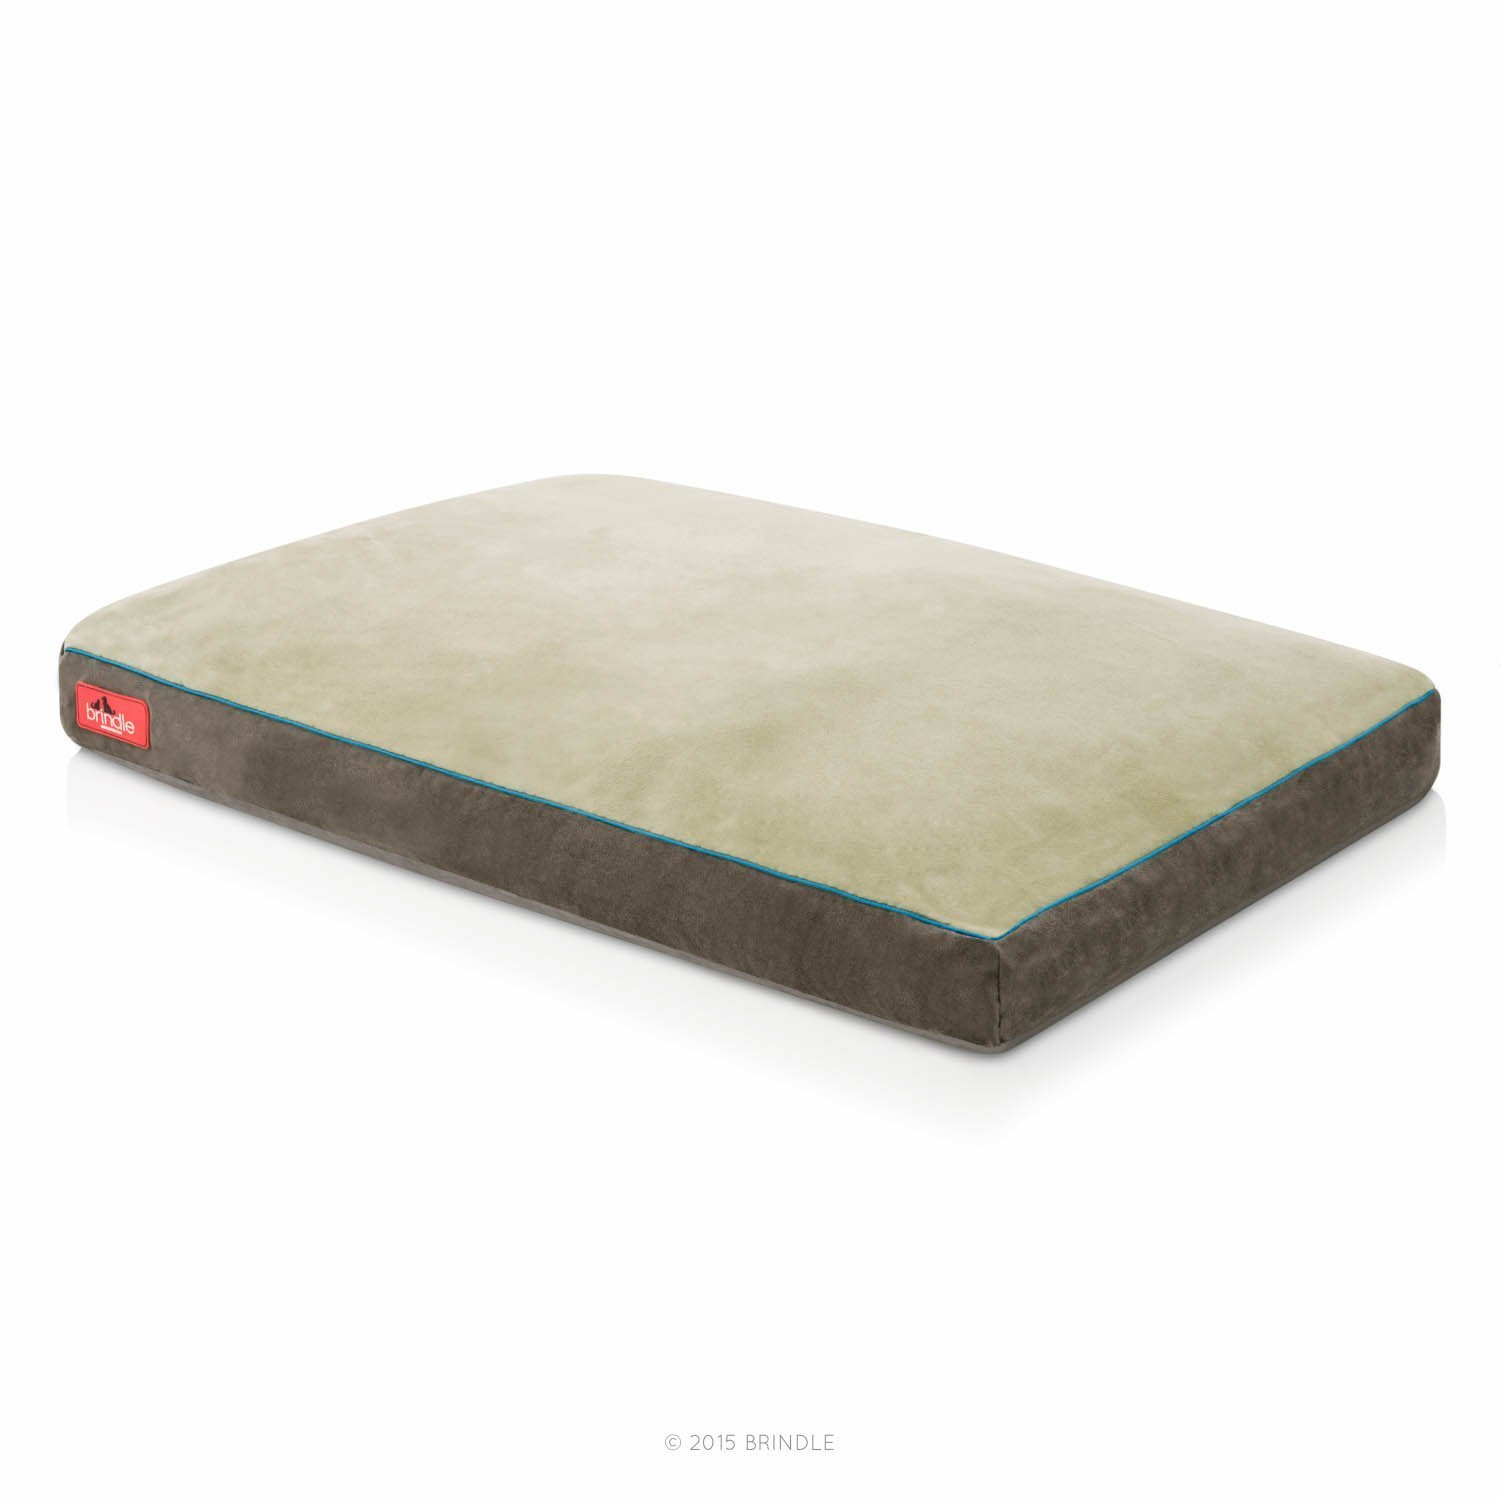 brindle soft memory best dog beds for cocker spaniels